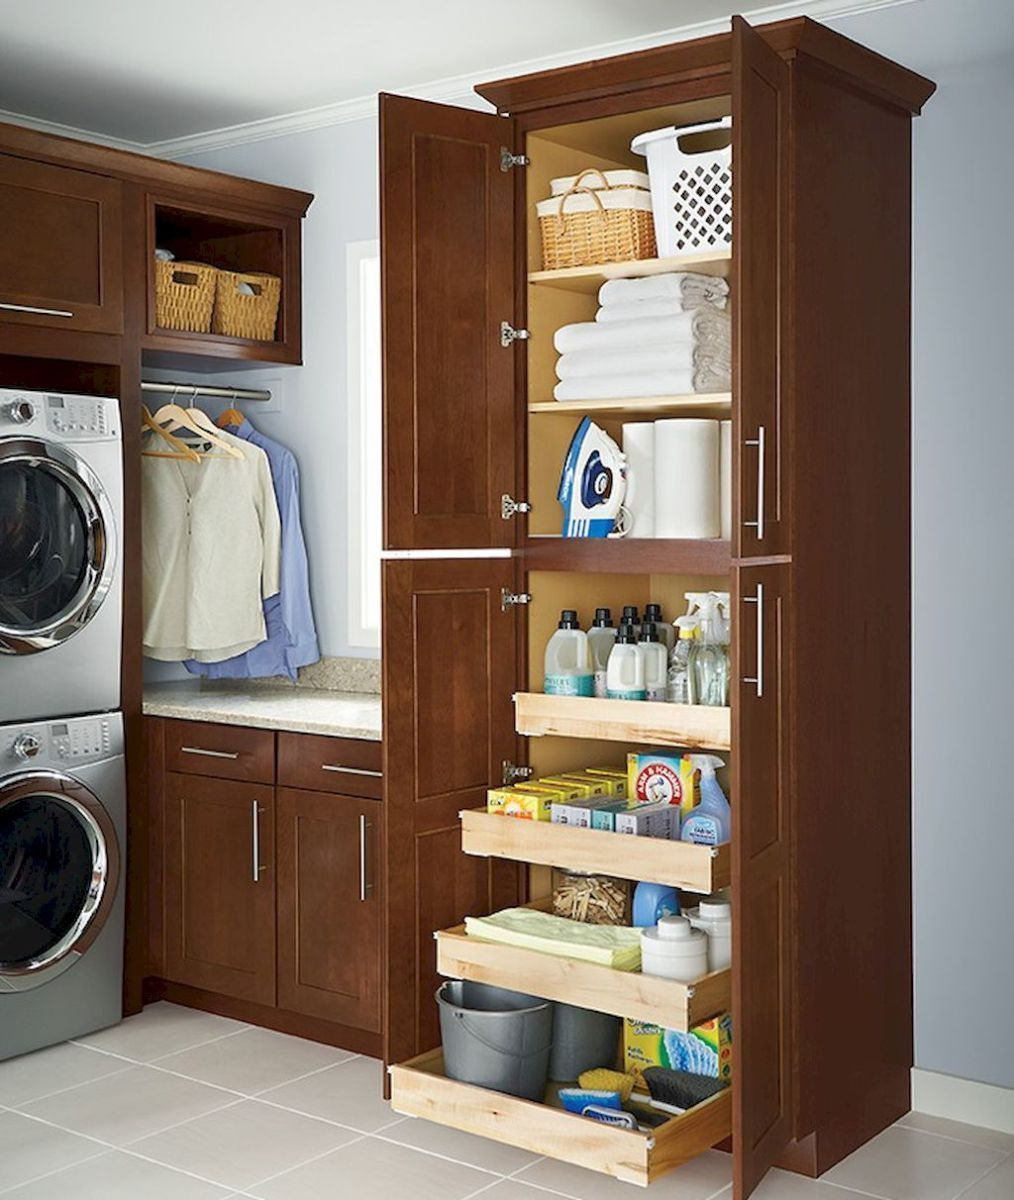 Diy Laundry Room Storage Shelves Ideas 71 Diy Laundry Room Storage Laundry Room Storage Cabinet Laundry Room Diy